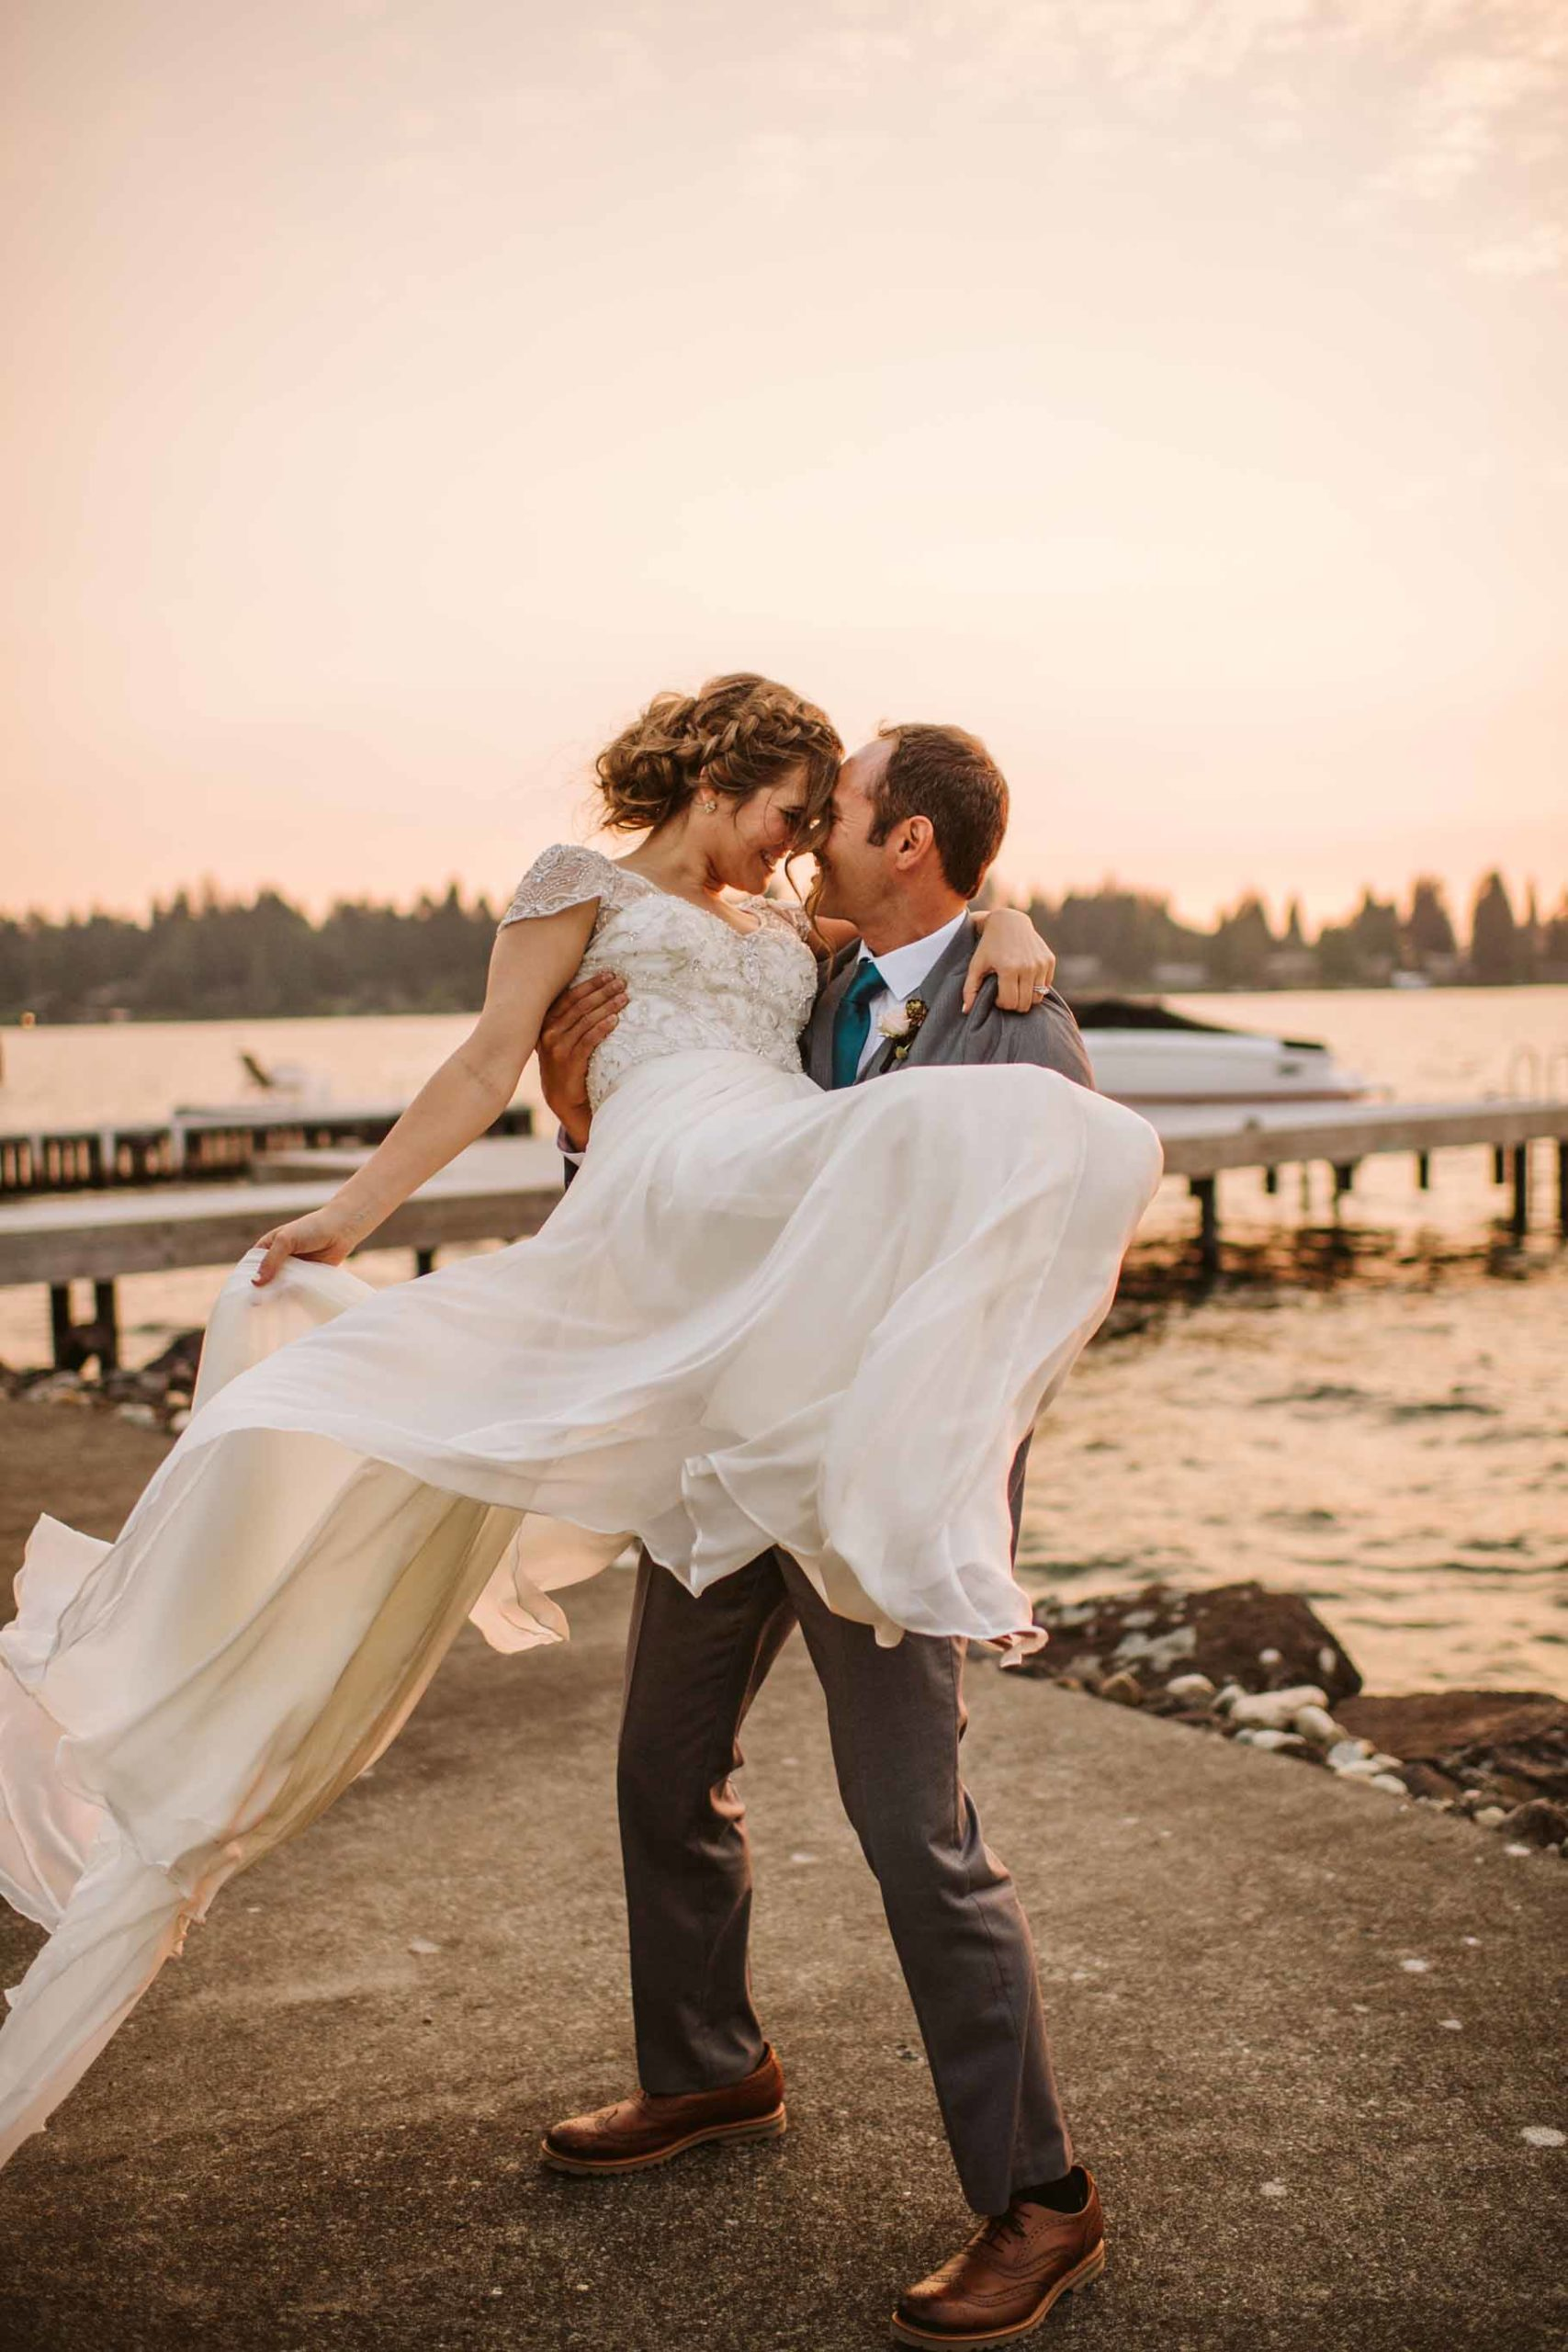 Romantic sunset wedding portrait on Lake Washington with groom carrying his bride on the dock.